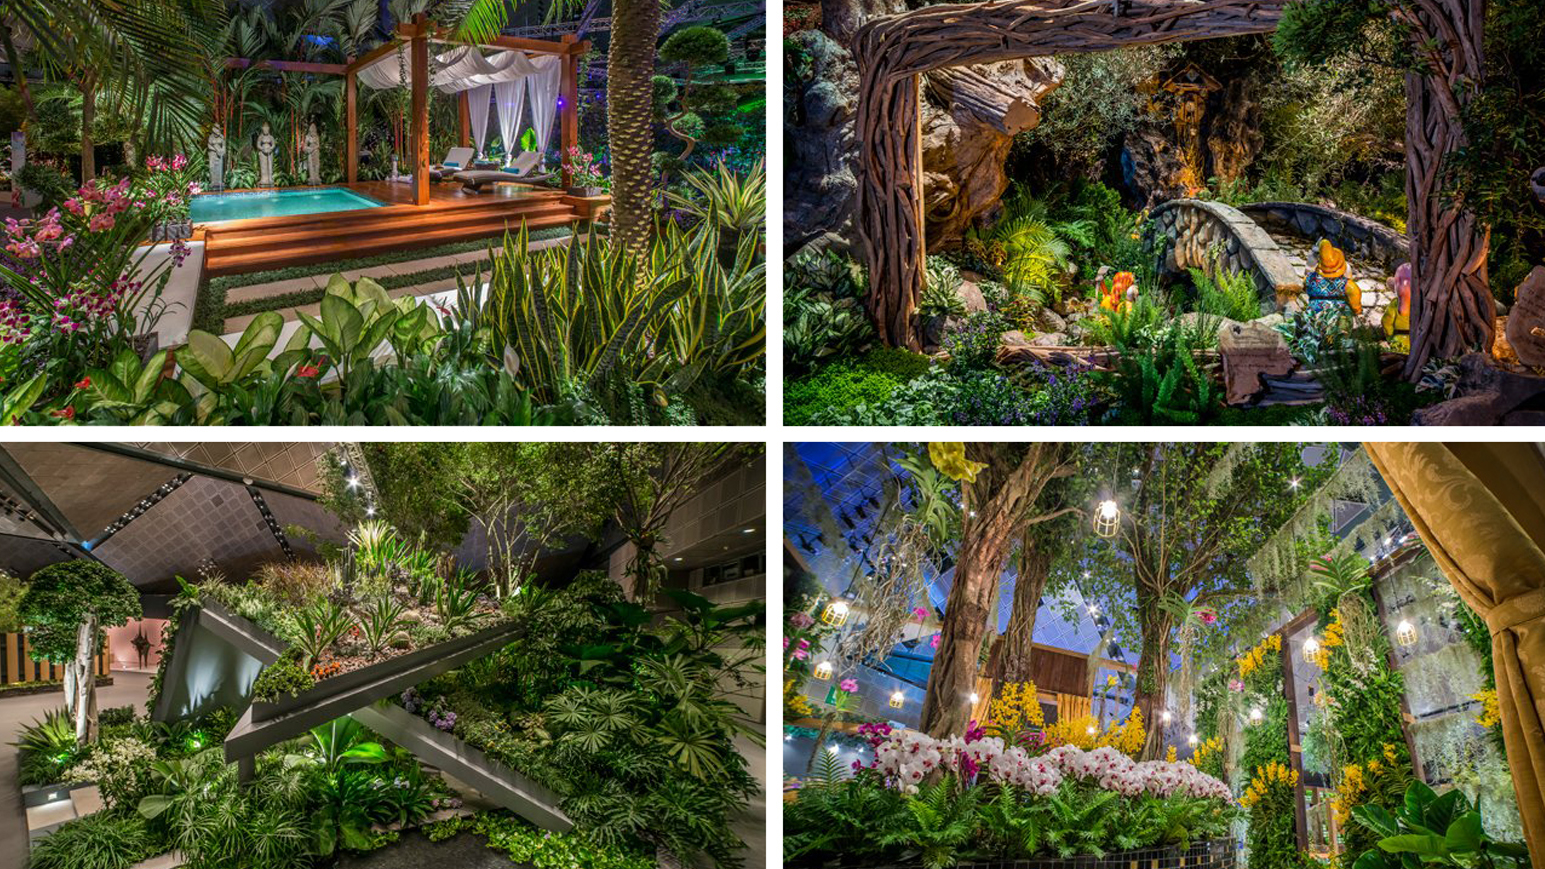 singapore garden festival 2014 will be held at gardens by the bay date 16th to 24th august 2014 10am to 10pm daily organiser national parks board here